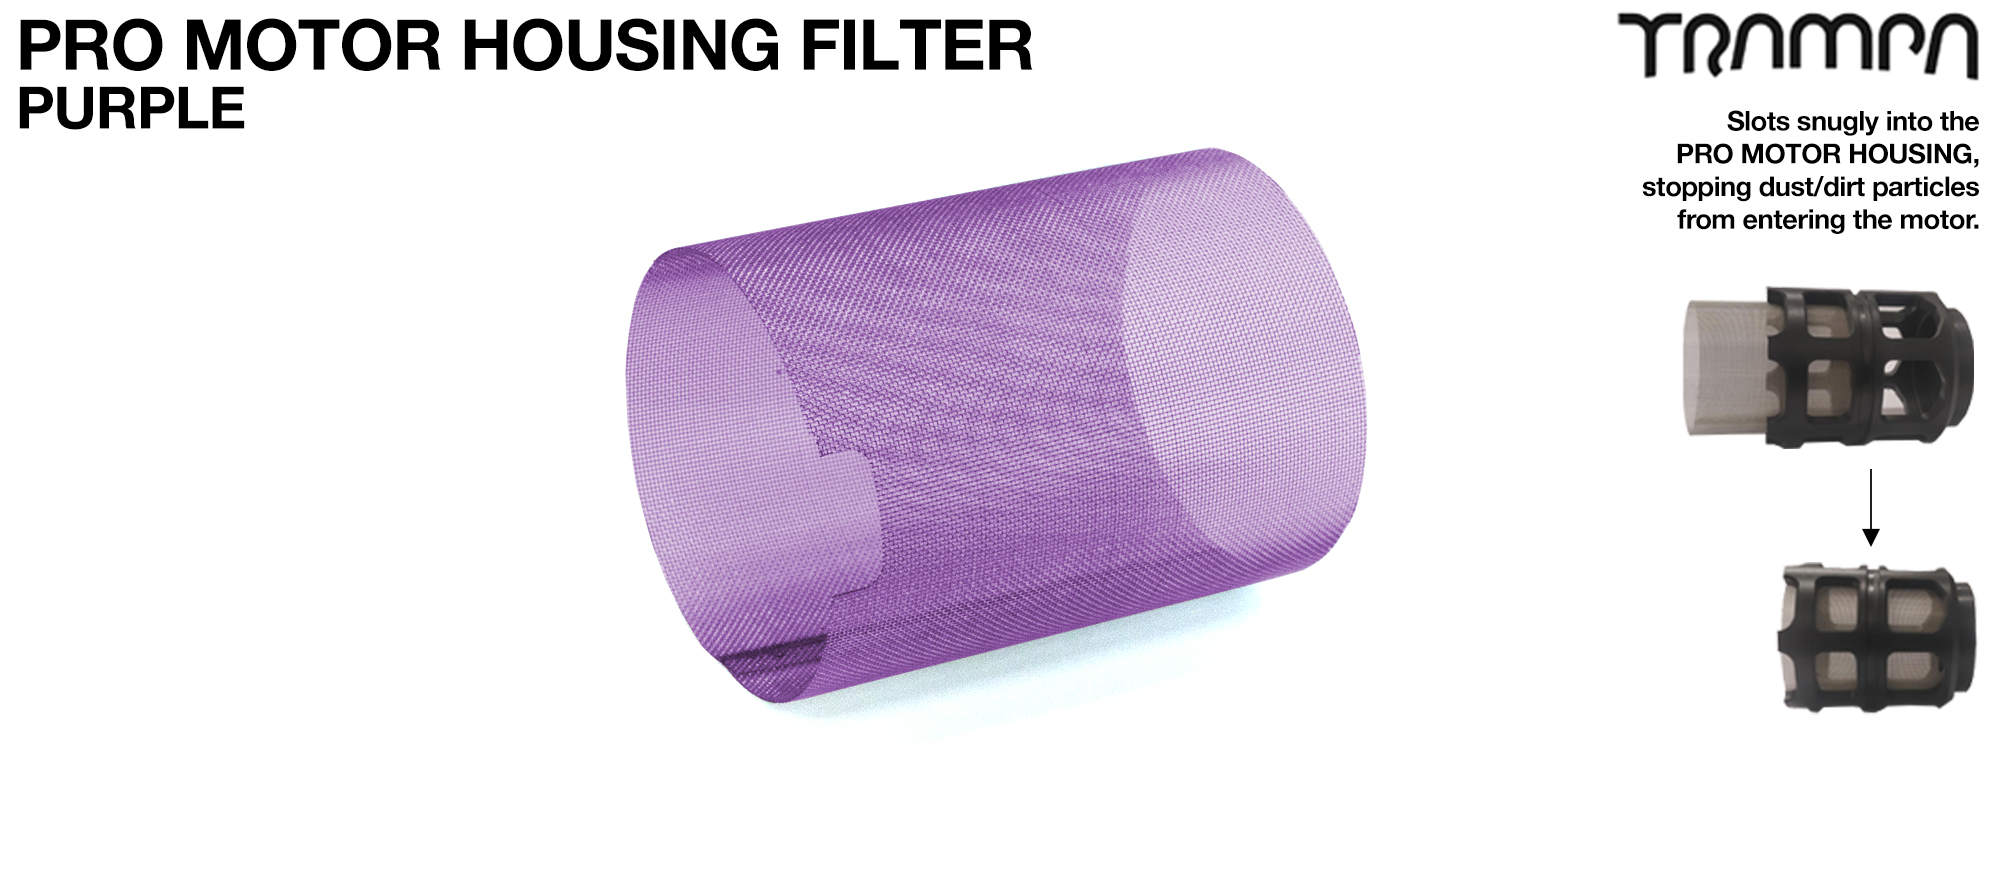 MkII Motor Protection Cover MESH FILTER - PURPLE